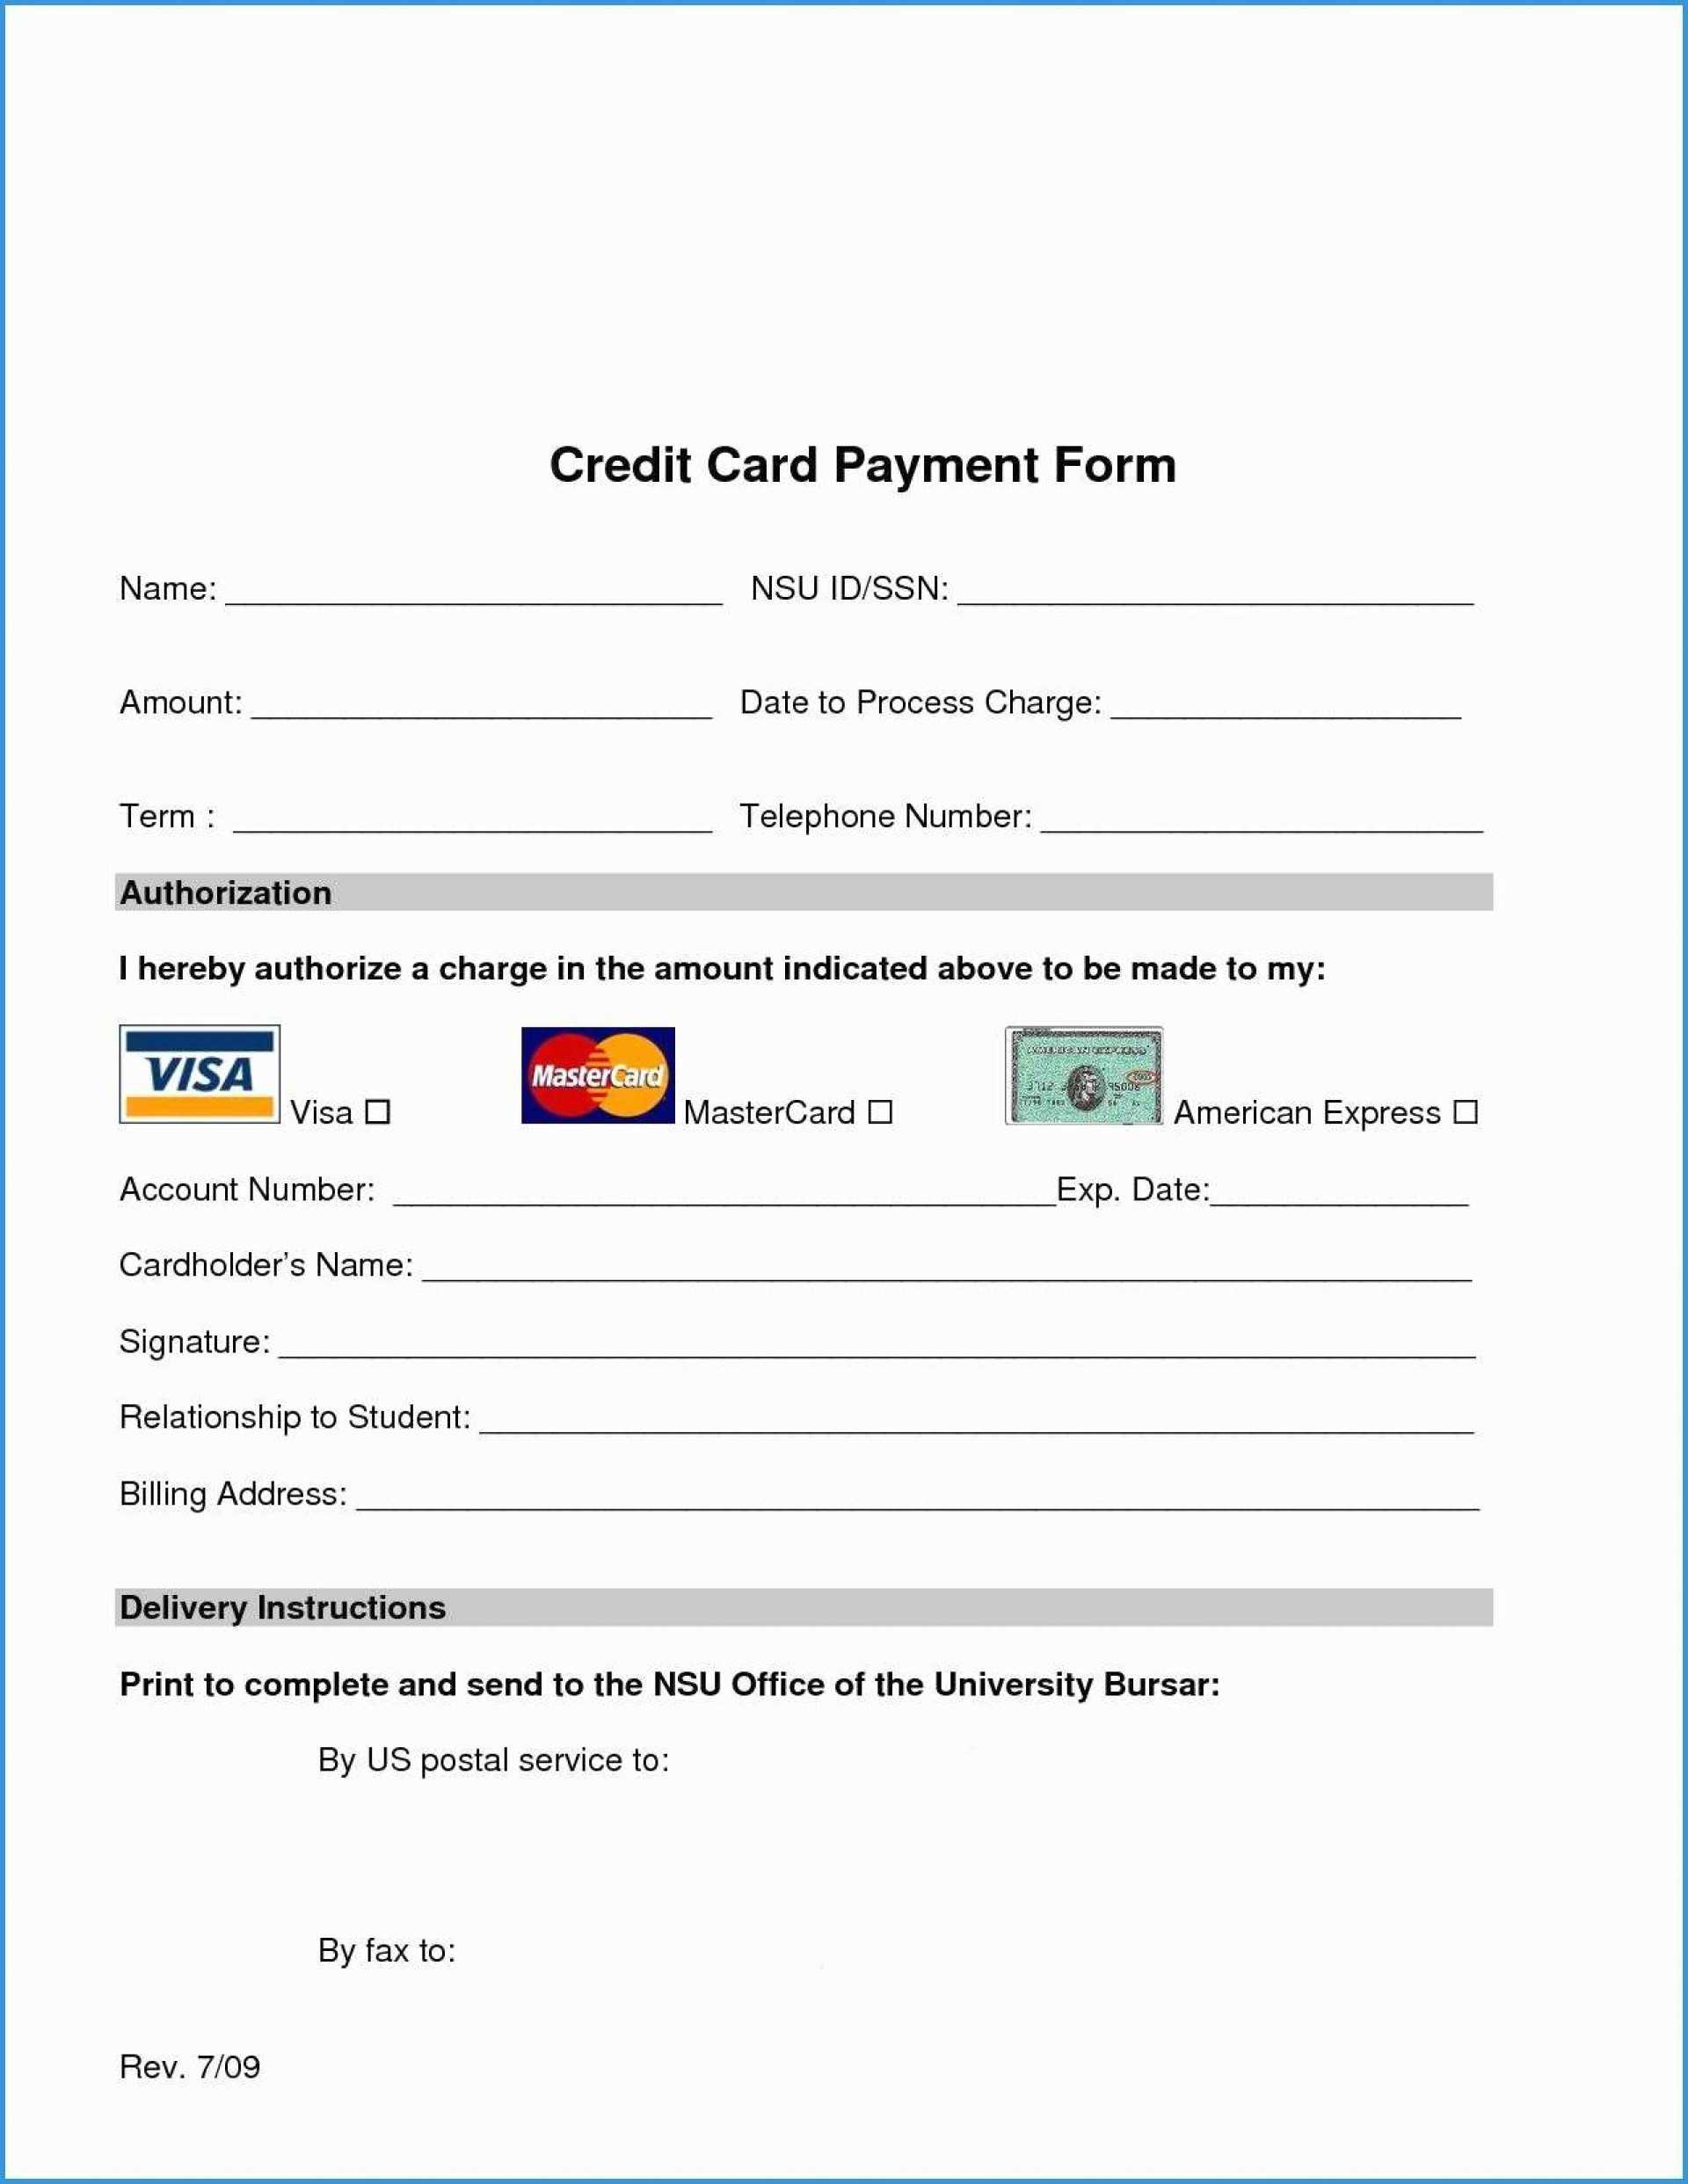 026 Template Ideas Credit Card Authorization Form Word Free Regarding Credit Card Size Template For Word